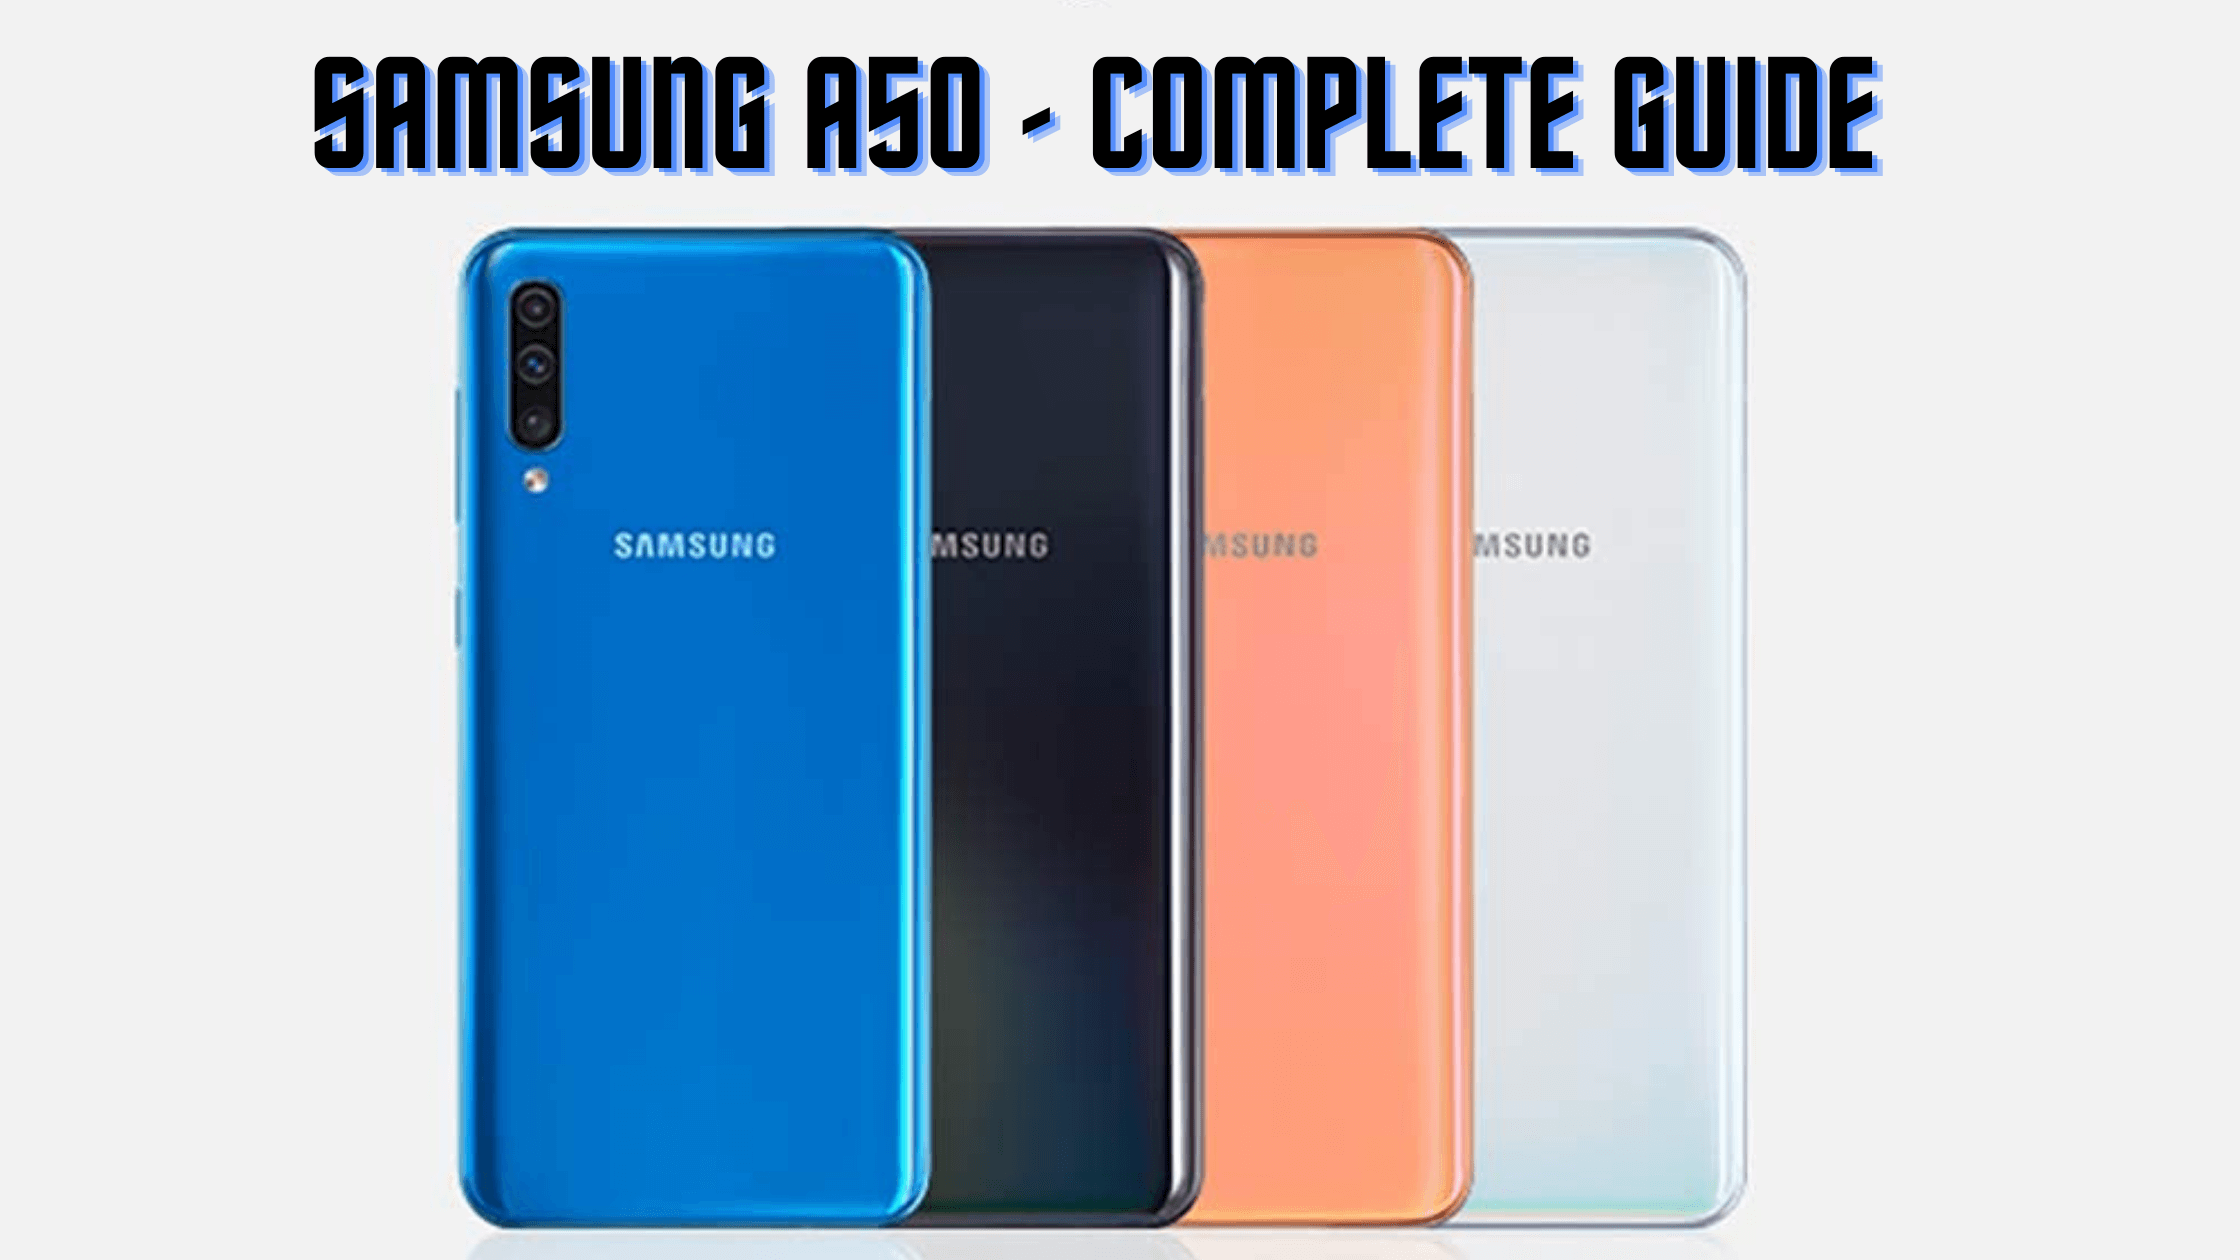 Samsung A50 - Complete Guide